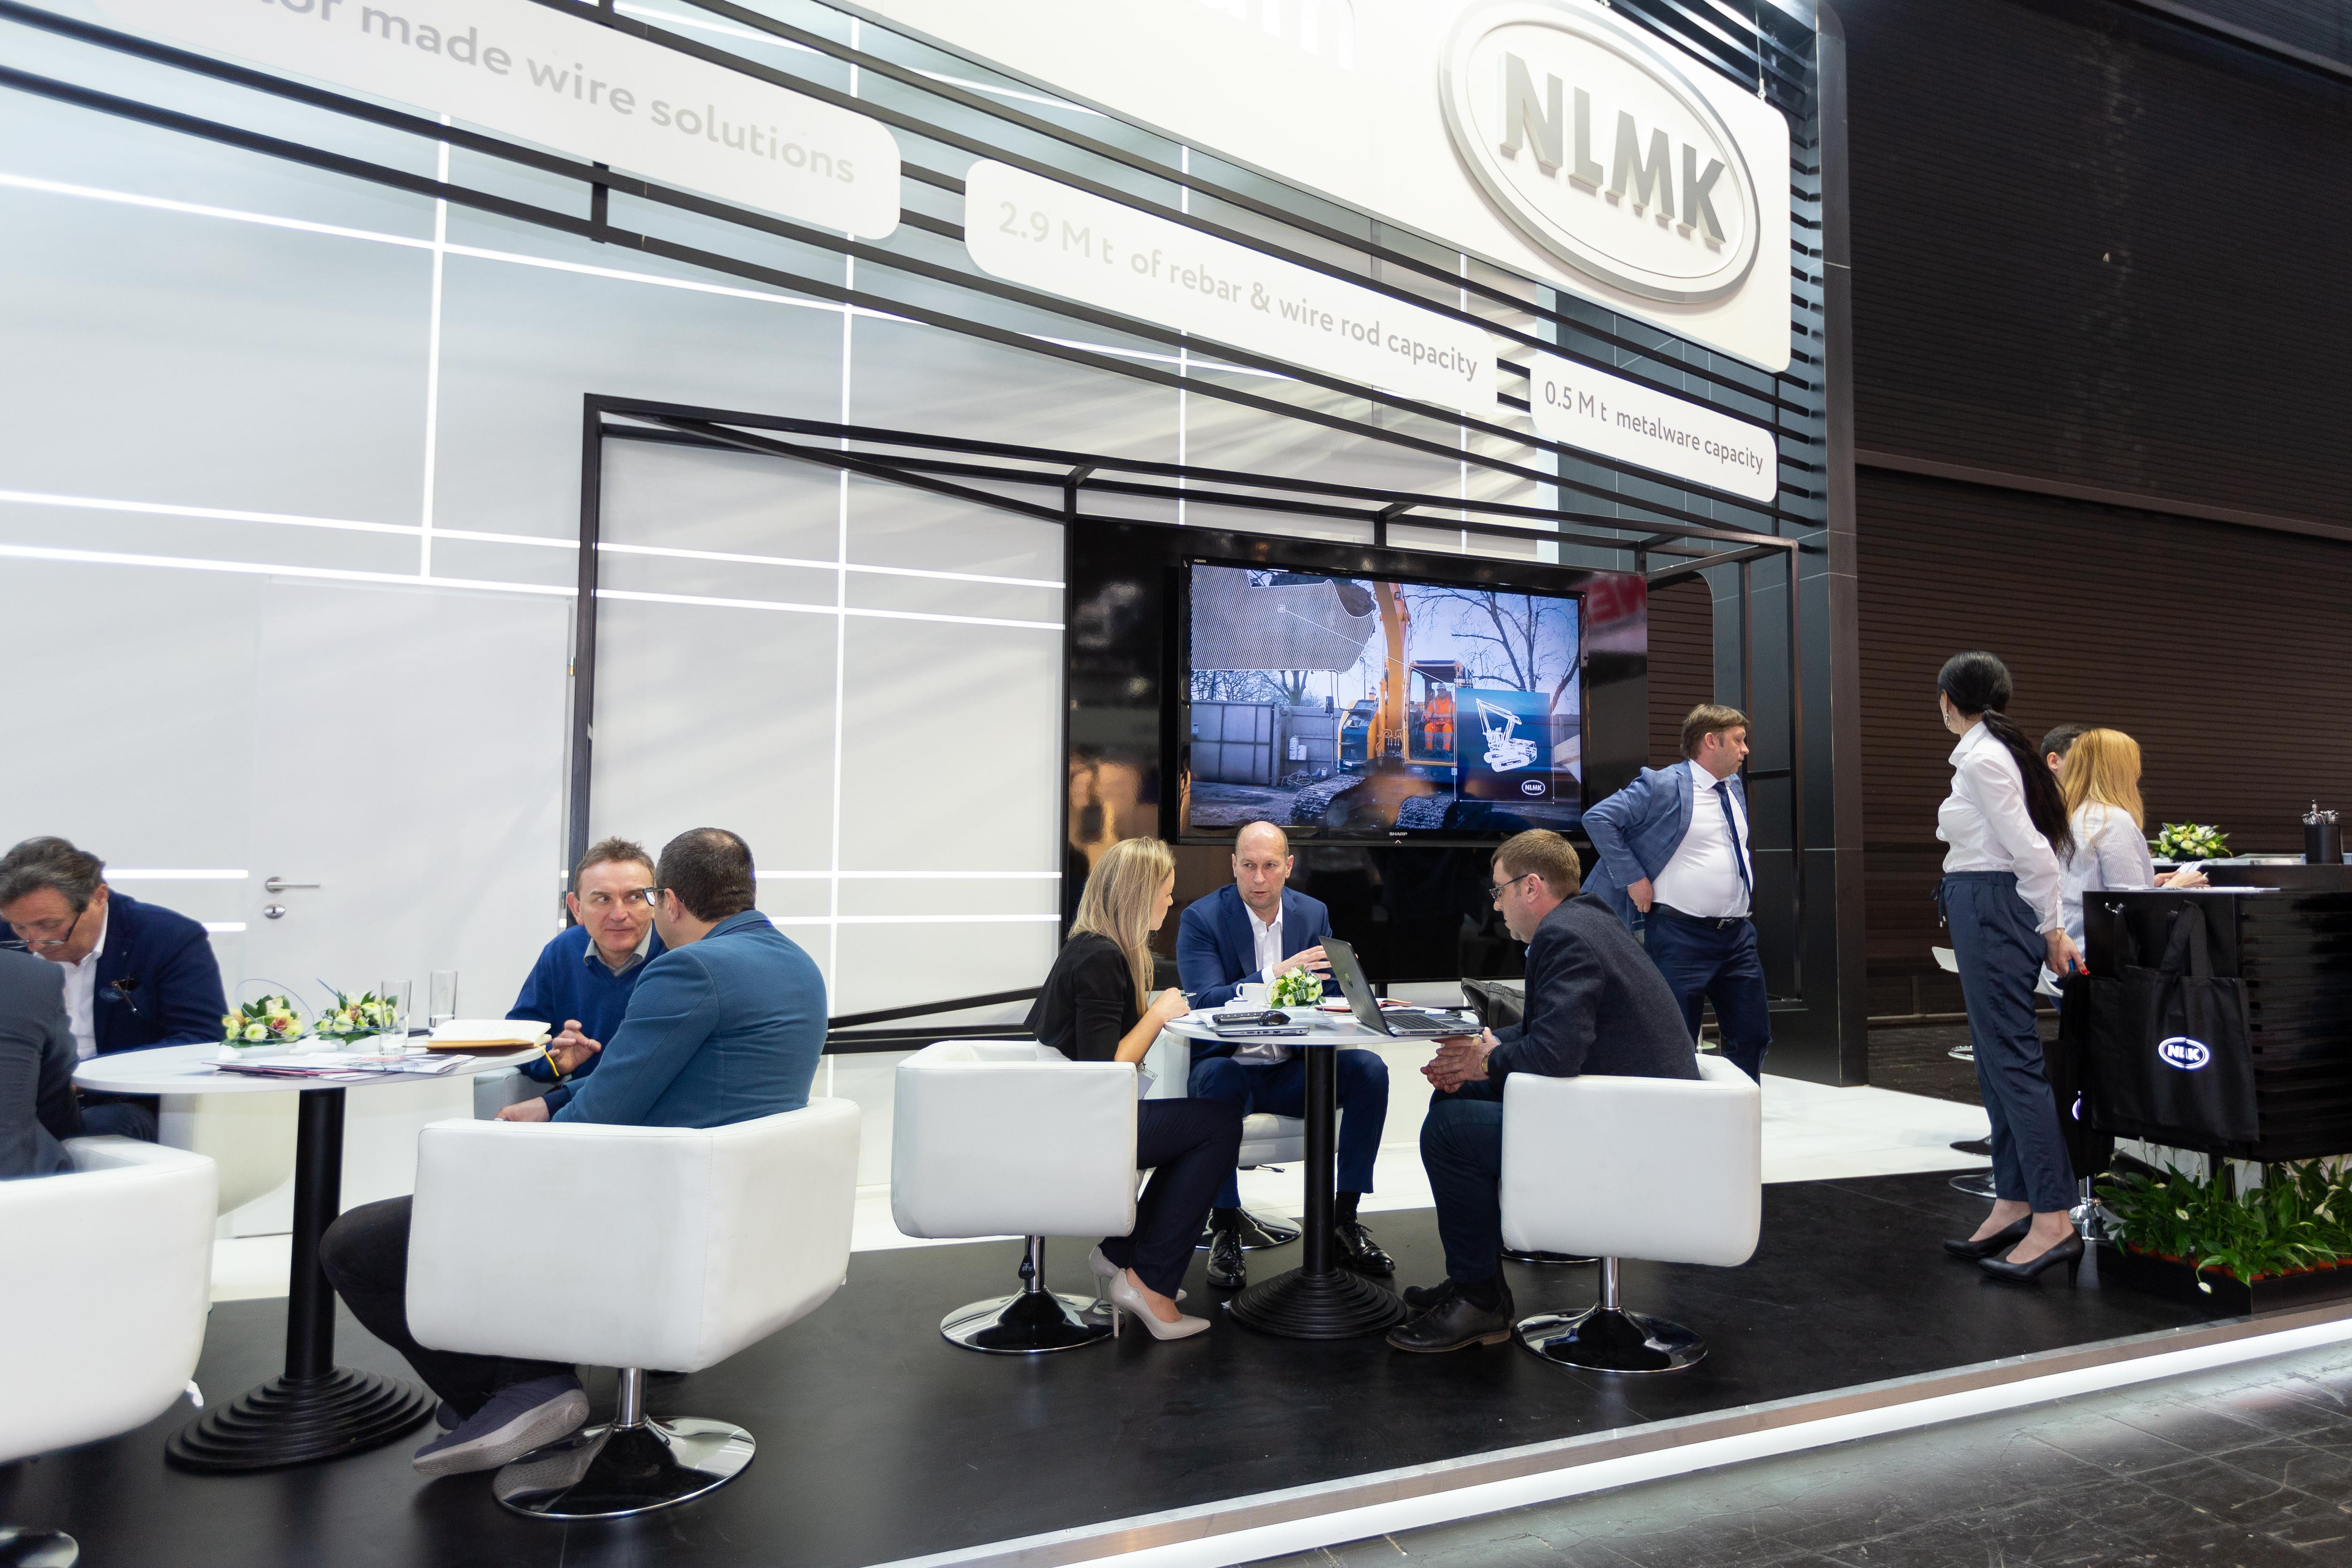 NLMK Group's stand showcased NLMK Russia Long Division products